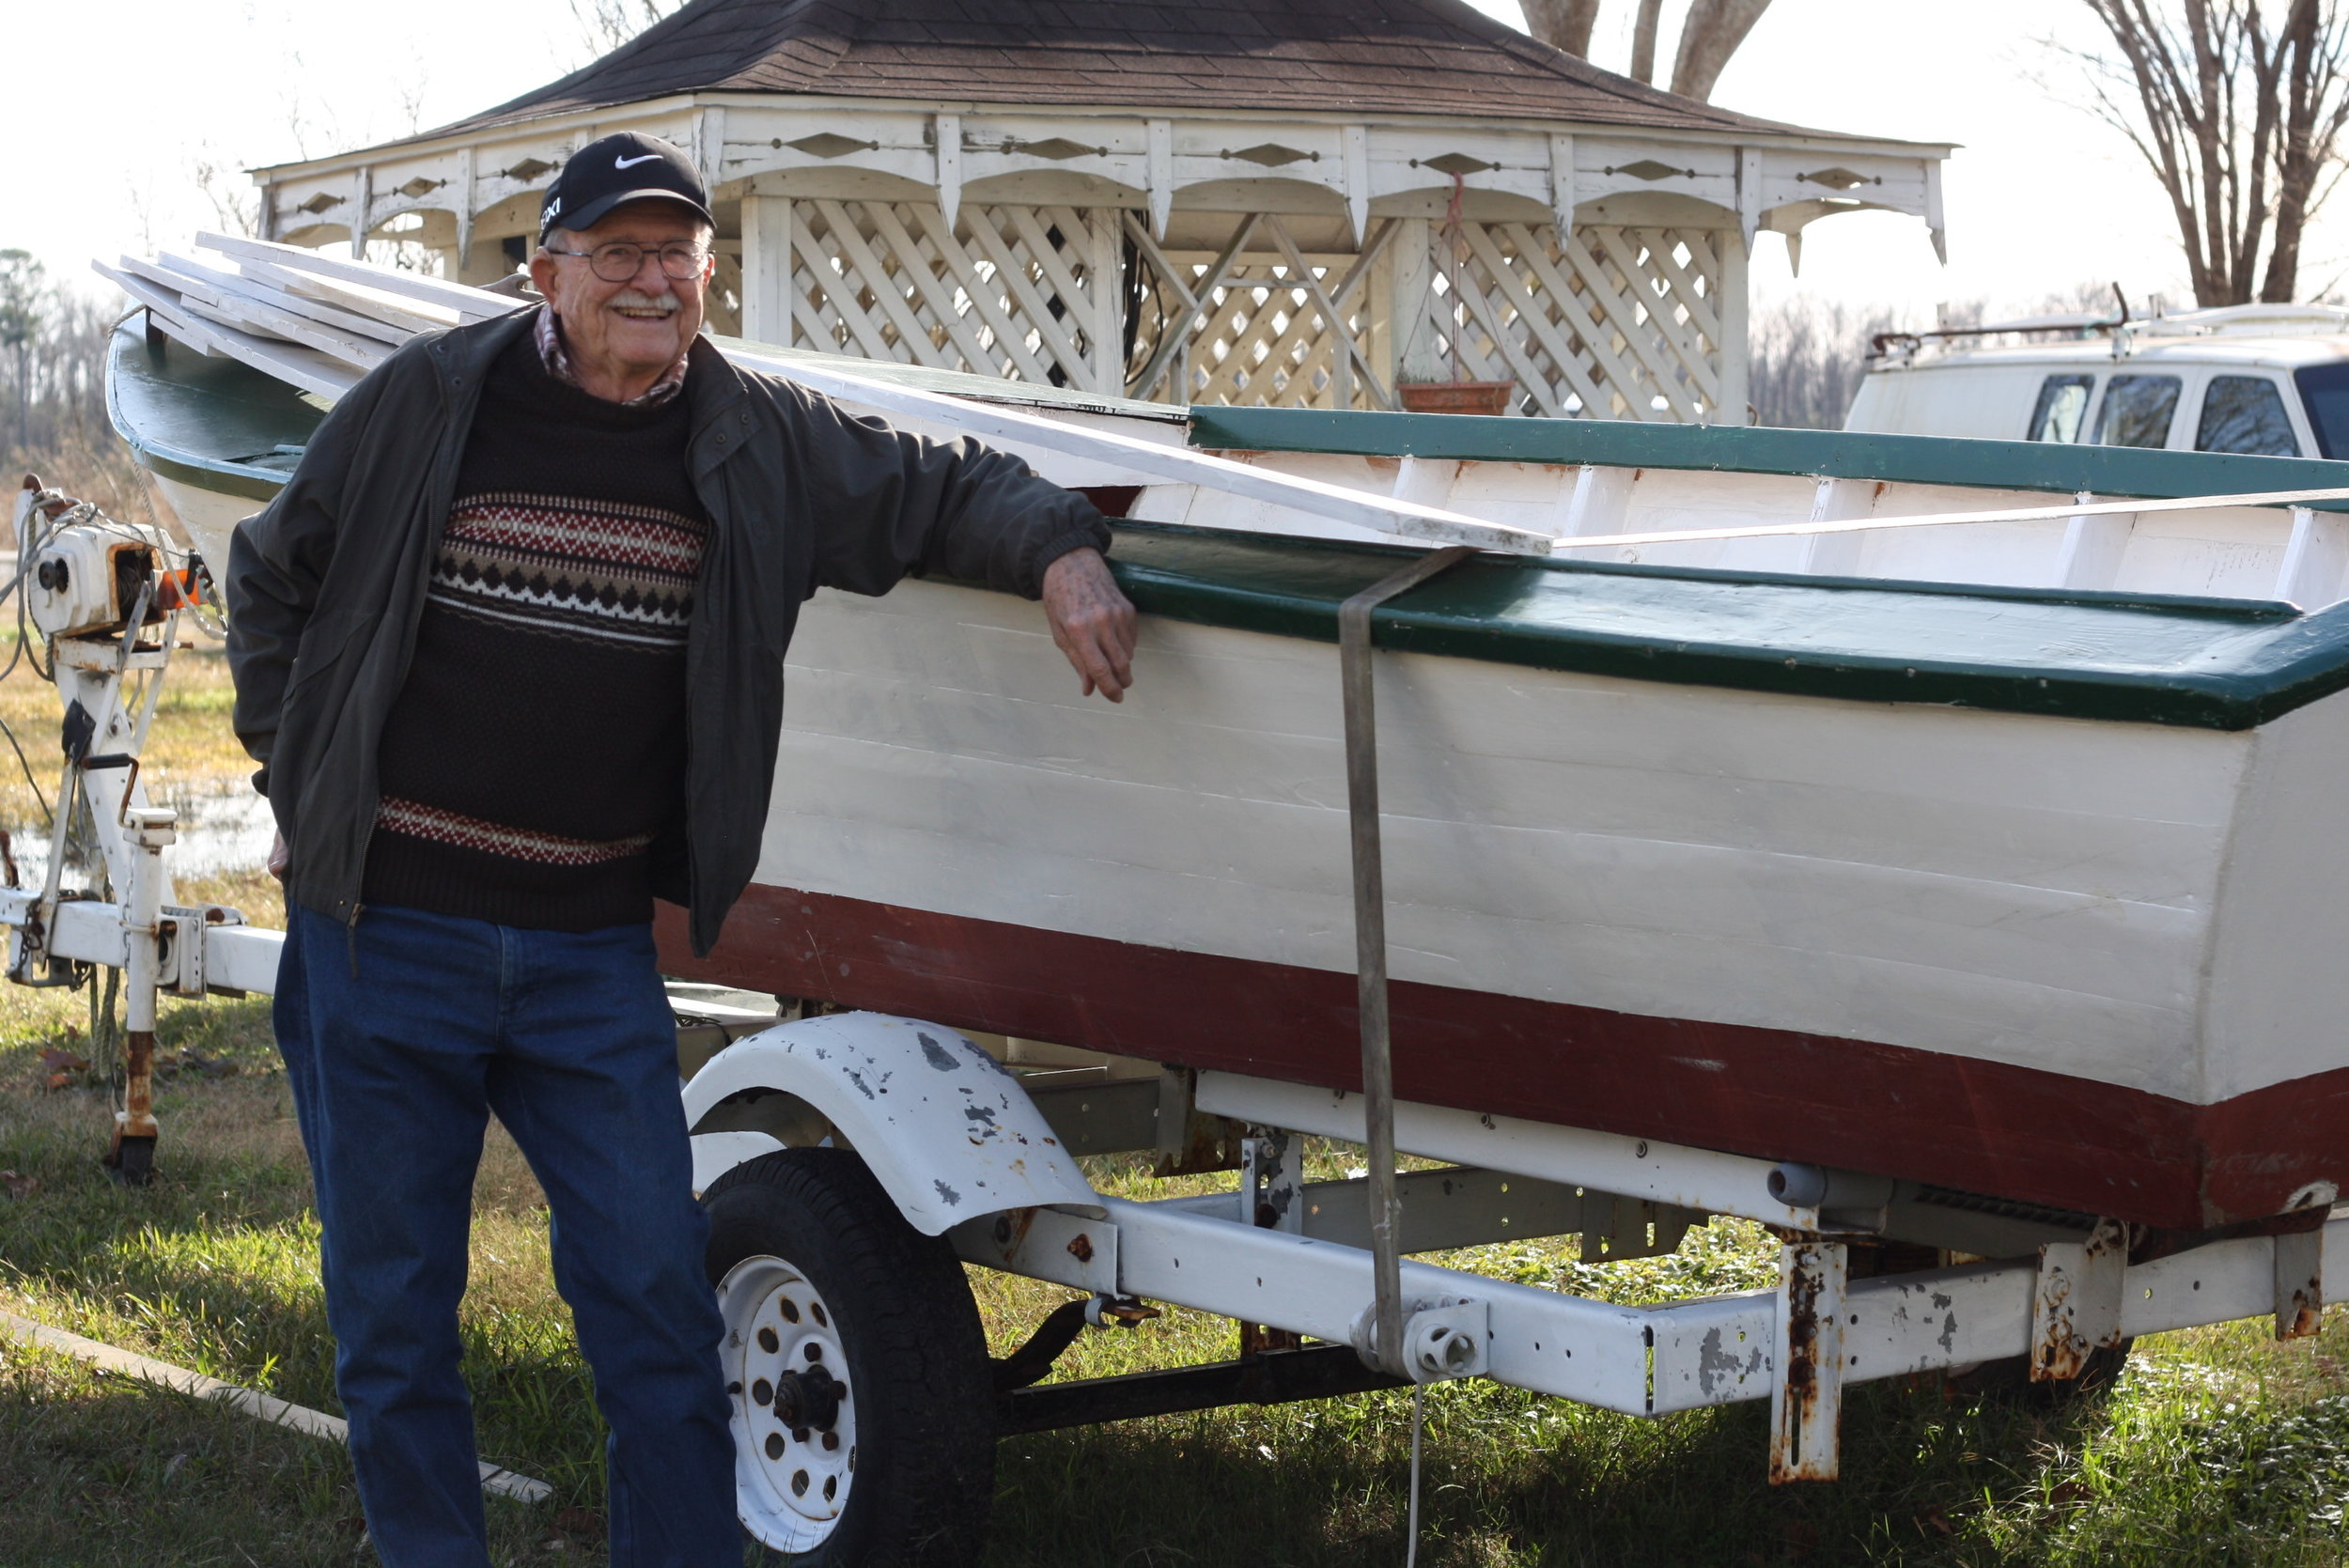 In A safe harbor, Al Schmitt of Engelhard talks about the ice plant there, the Hadeco, and boats from Hatteras seeking refuge